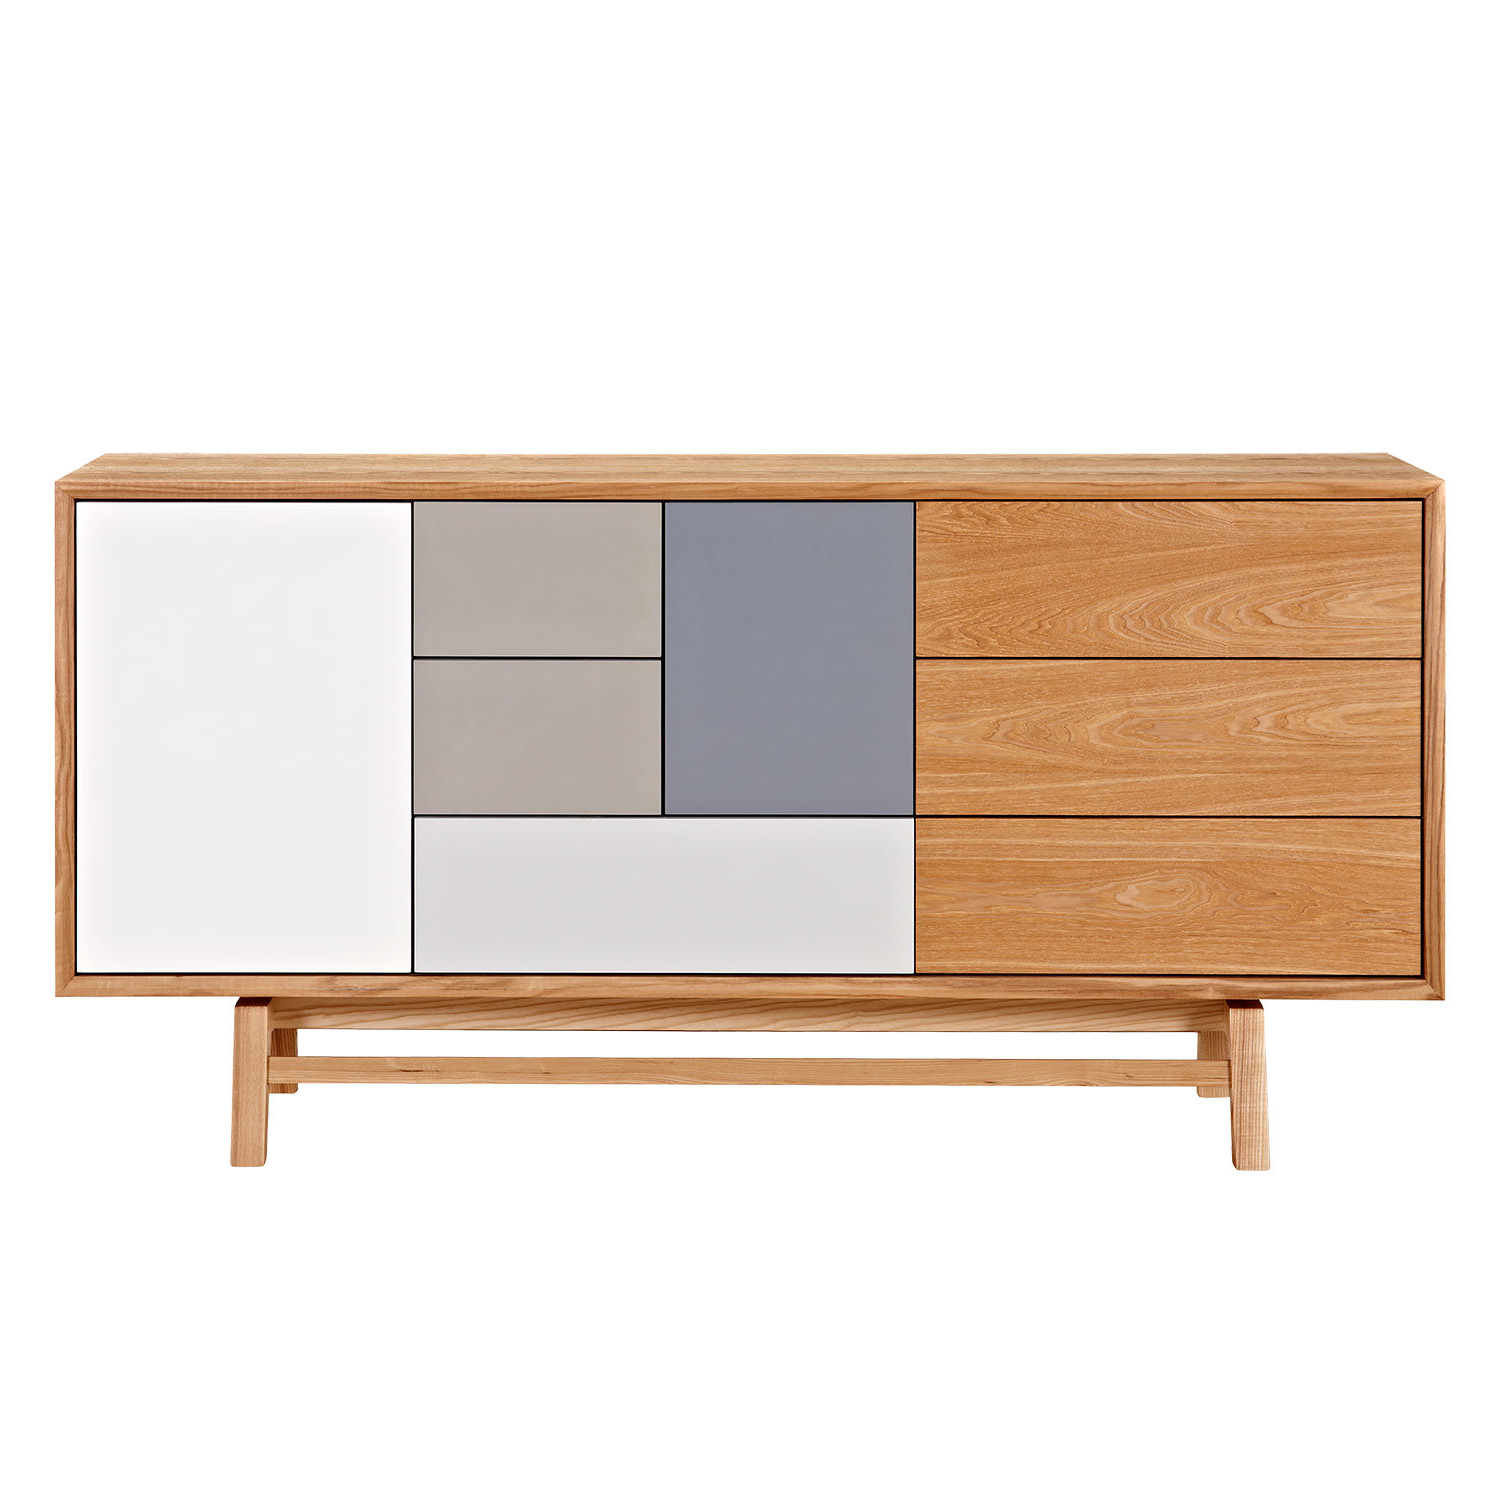 Wayfair For Favorite Solar Refinement Sideboards (View 2 of 20)